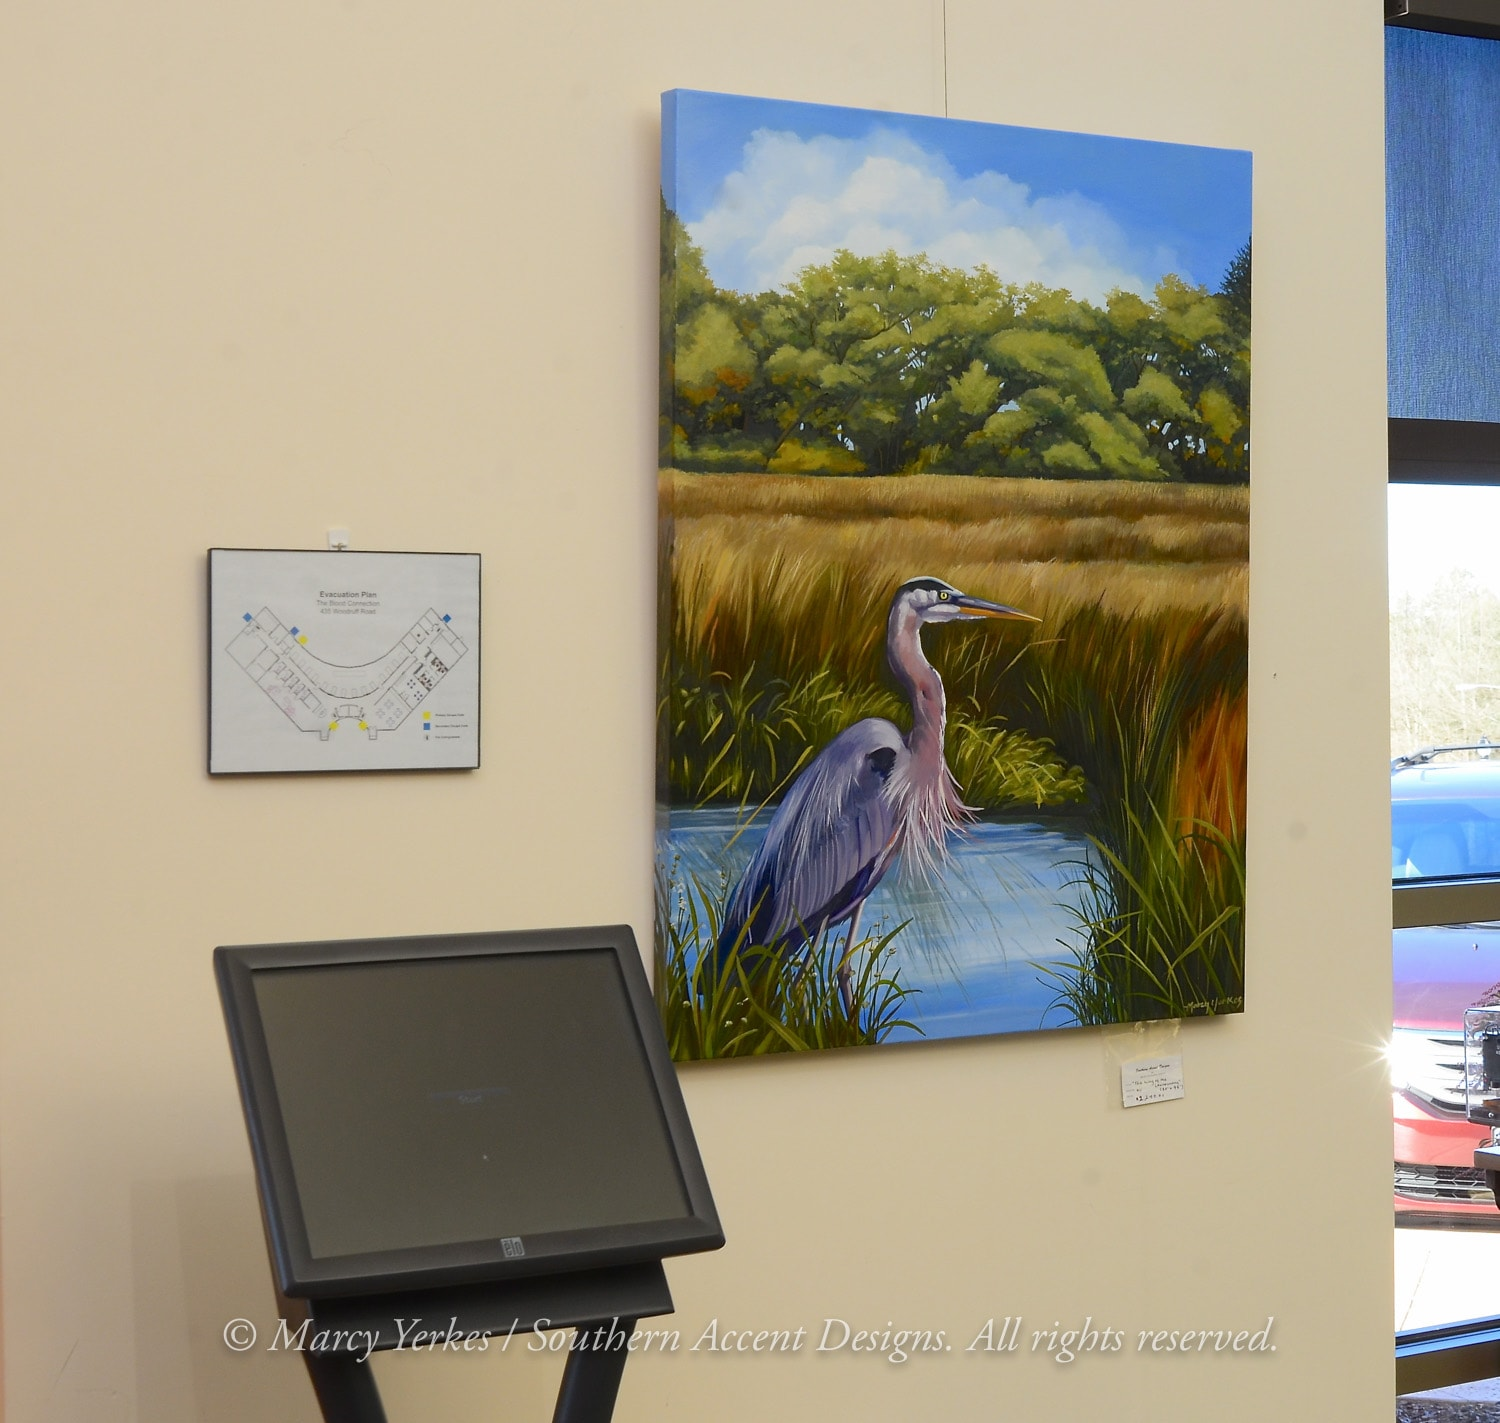 Marcy yerkes work heron 1 fine art murals by marcy for Home designs by marcy